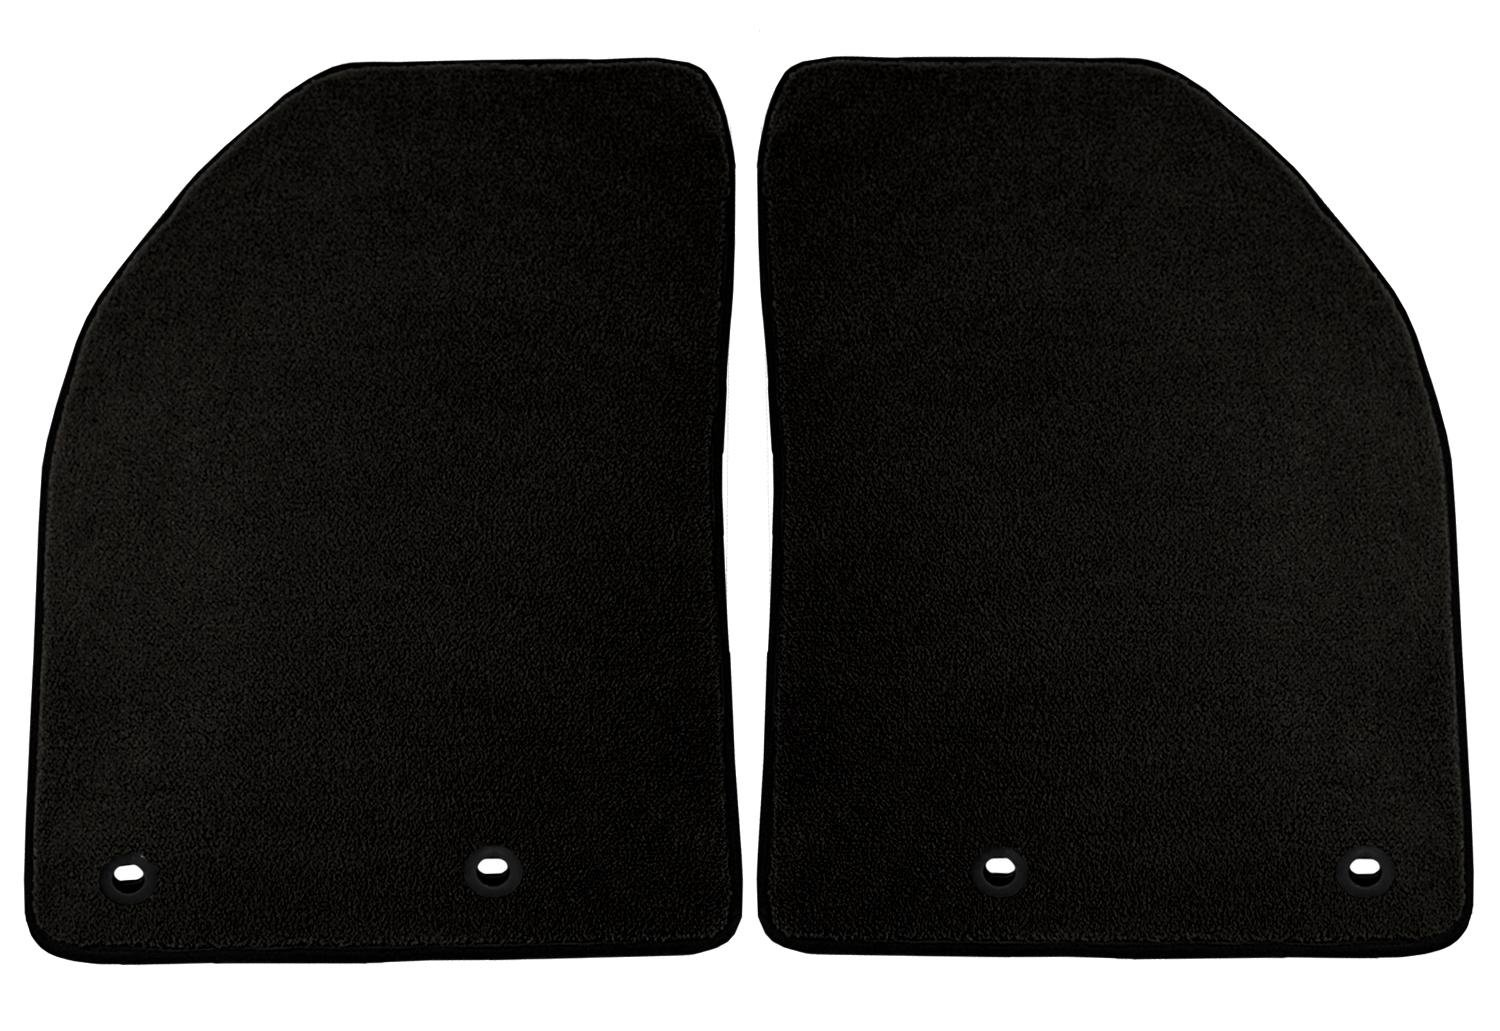 Coverking Custom Fit Front Floor Mats for Select Jaguar XJ Models Nylon Carpet Black